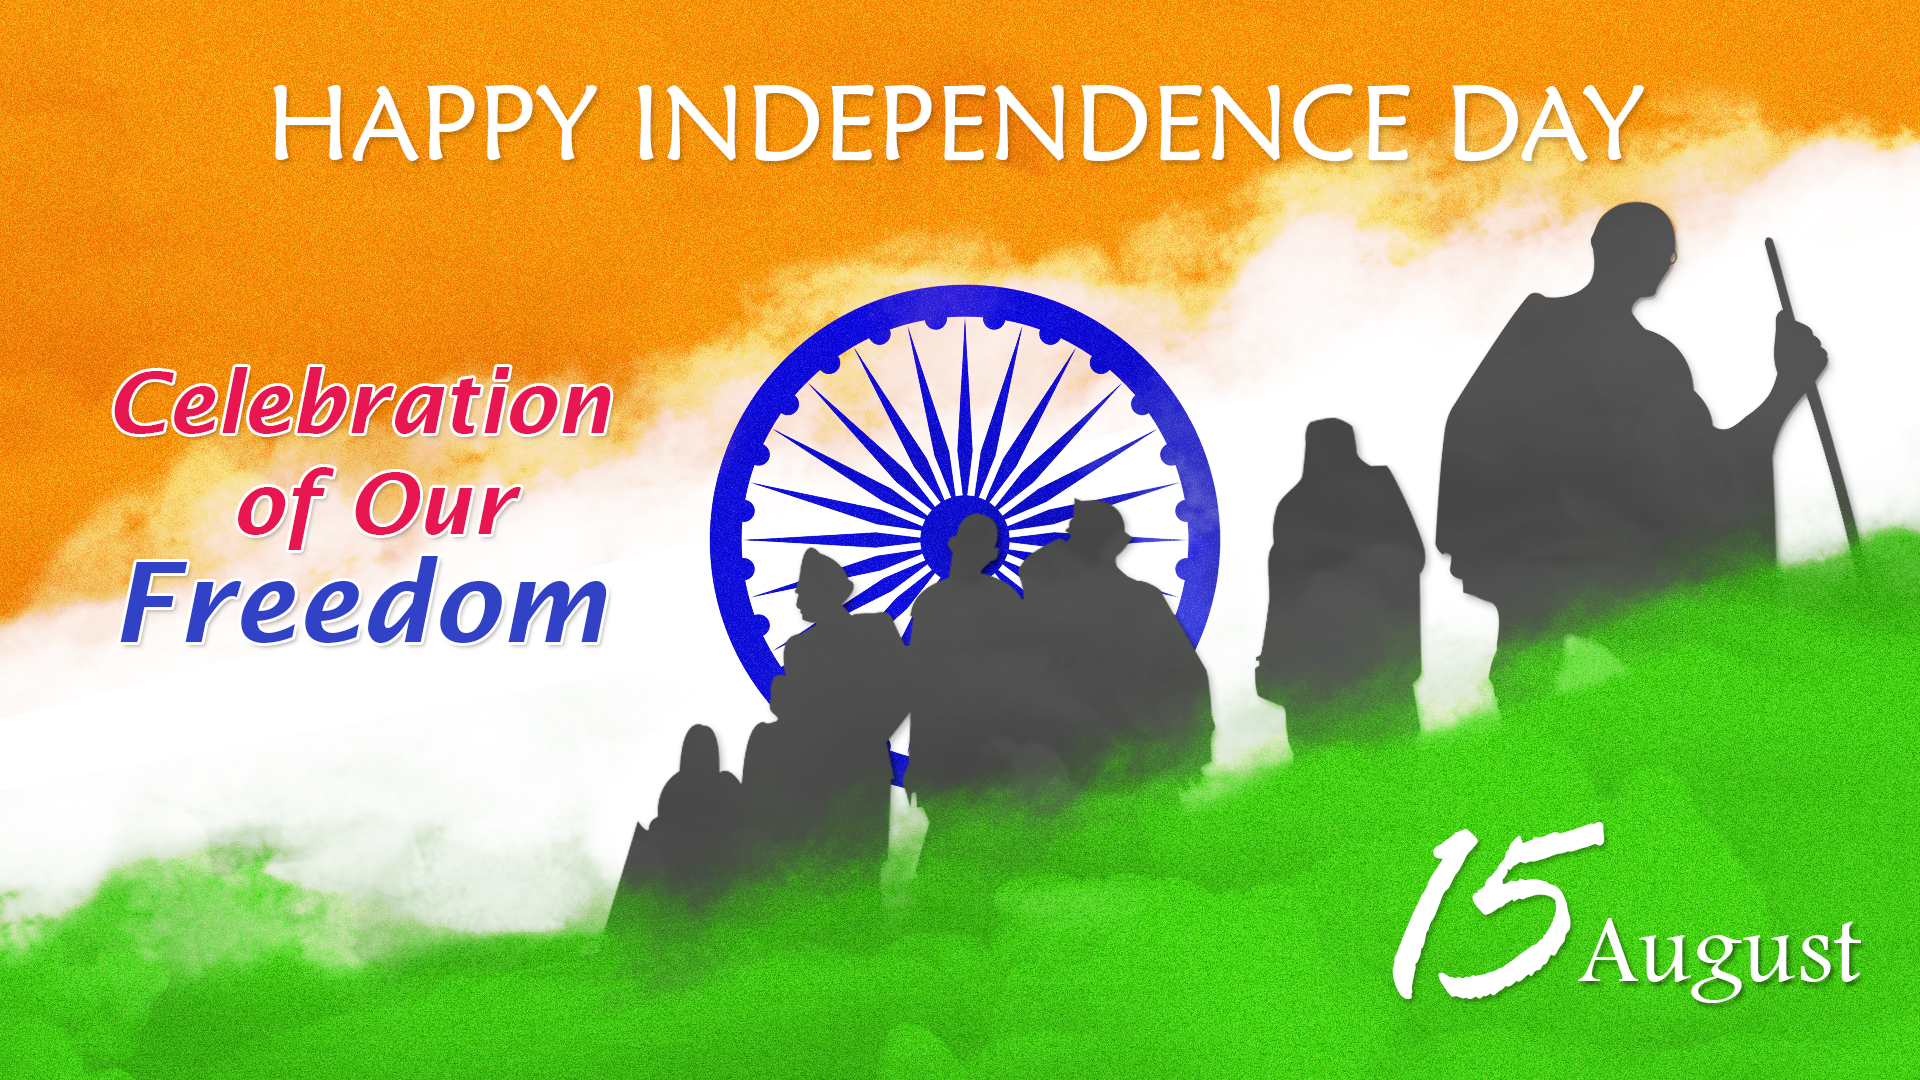 Happy 15th August - Independence Day